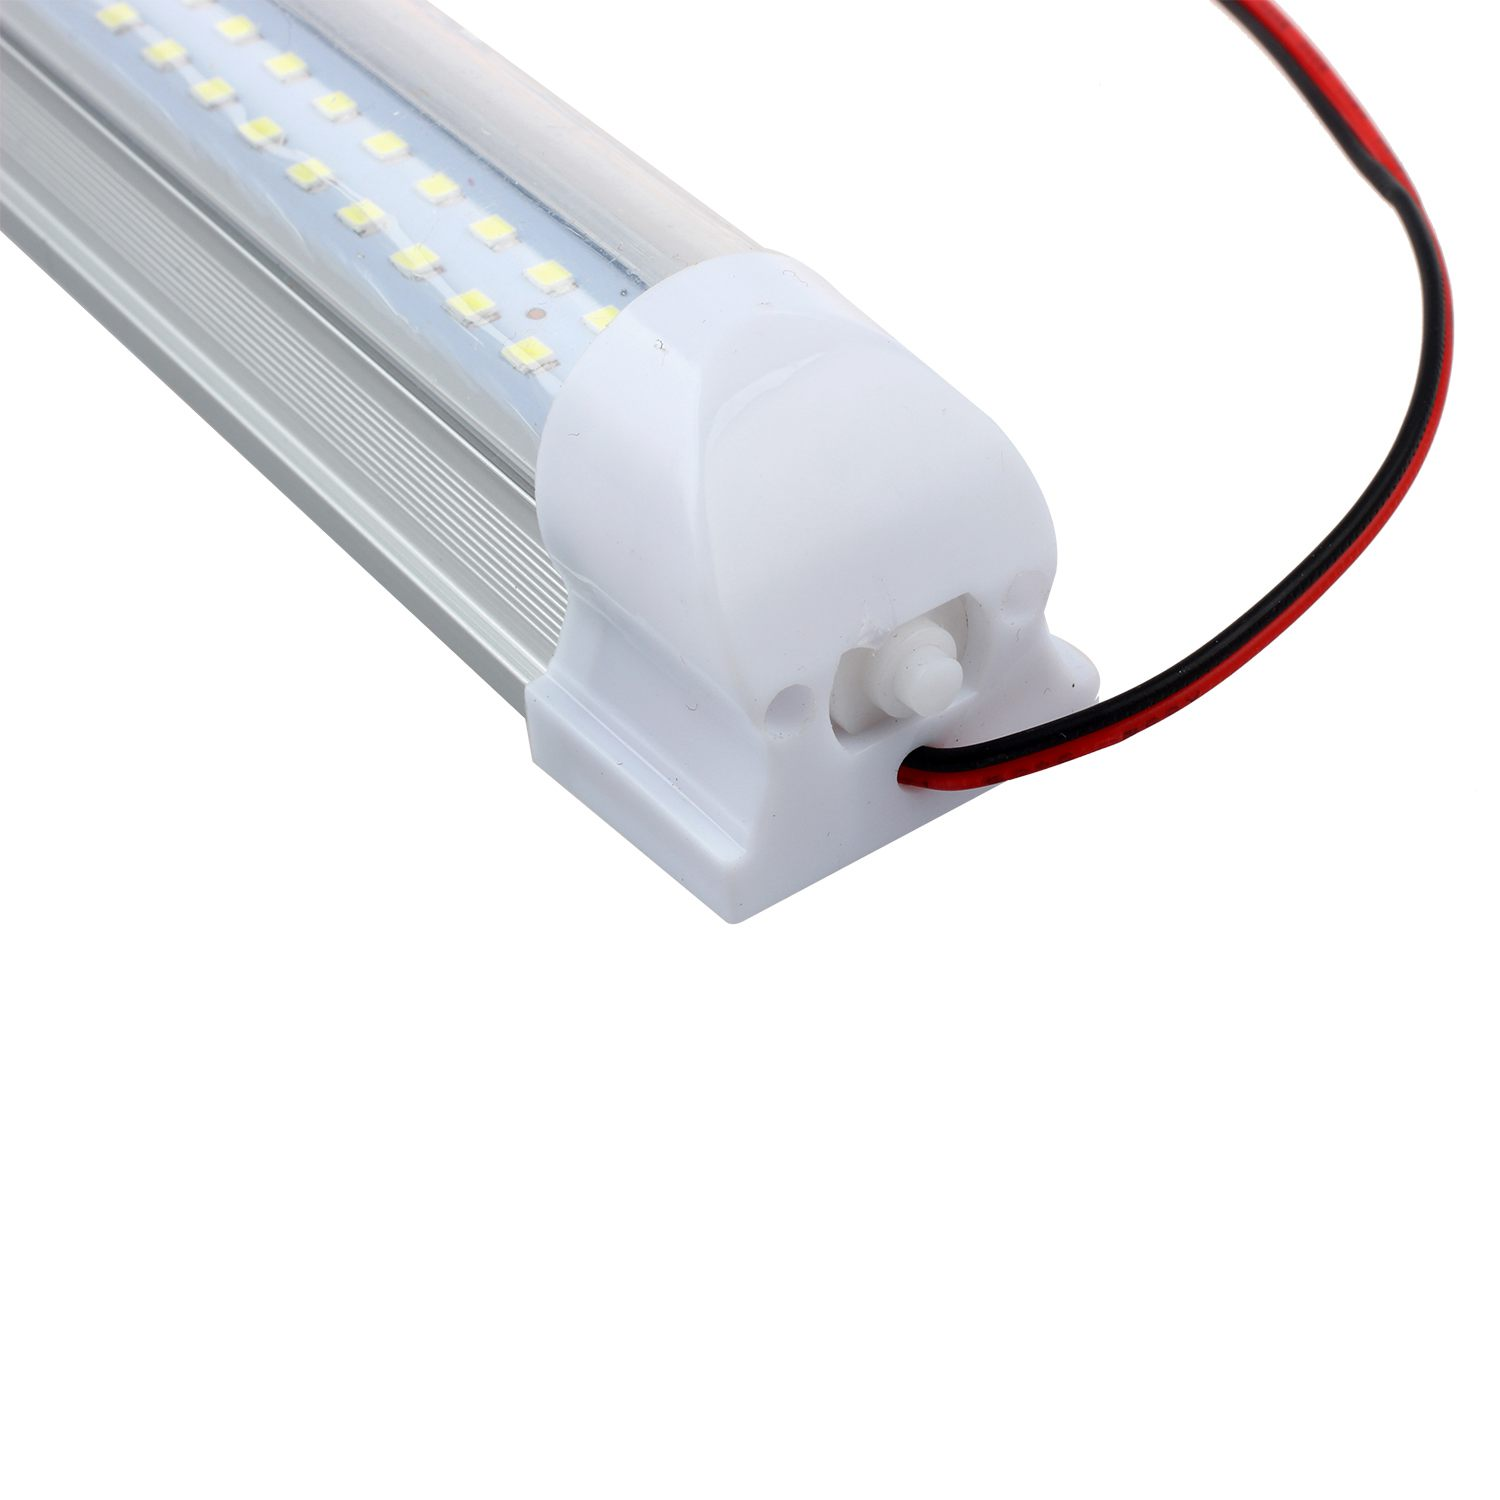 led light equivalent cache to philips p bulbs can conventional lamp reflector en